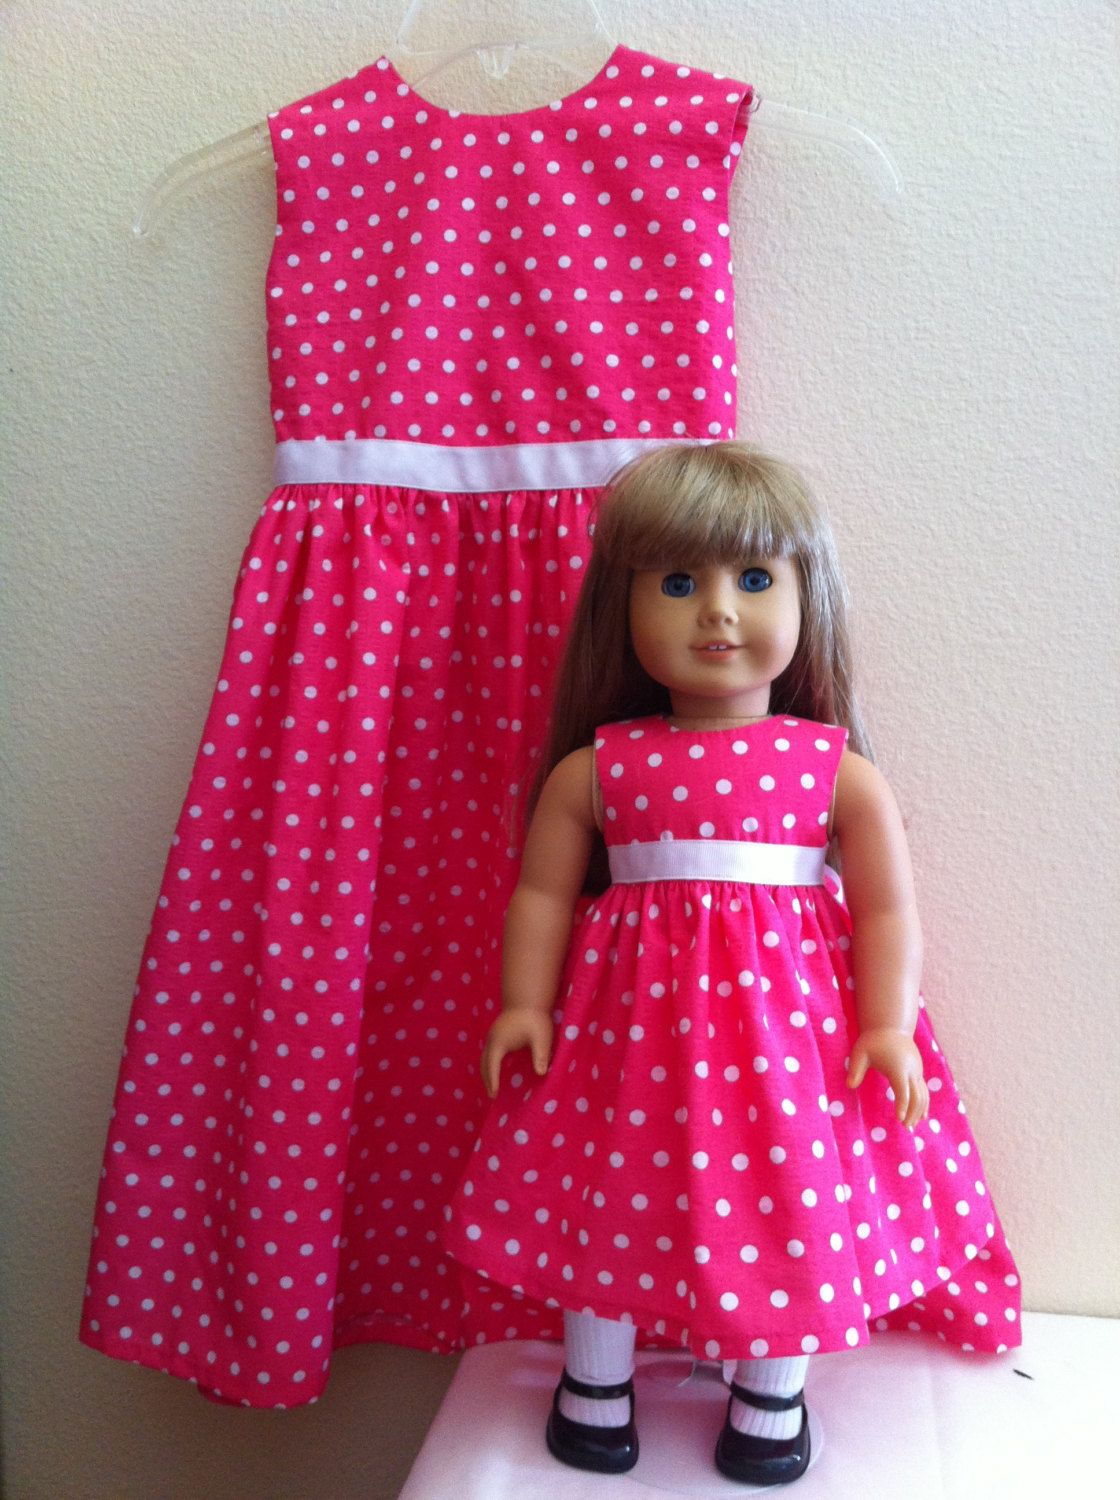 Matching Polka Dot Dresses For Child And American Girl Or